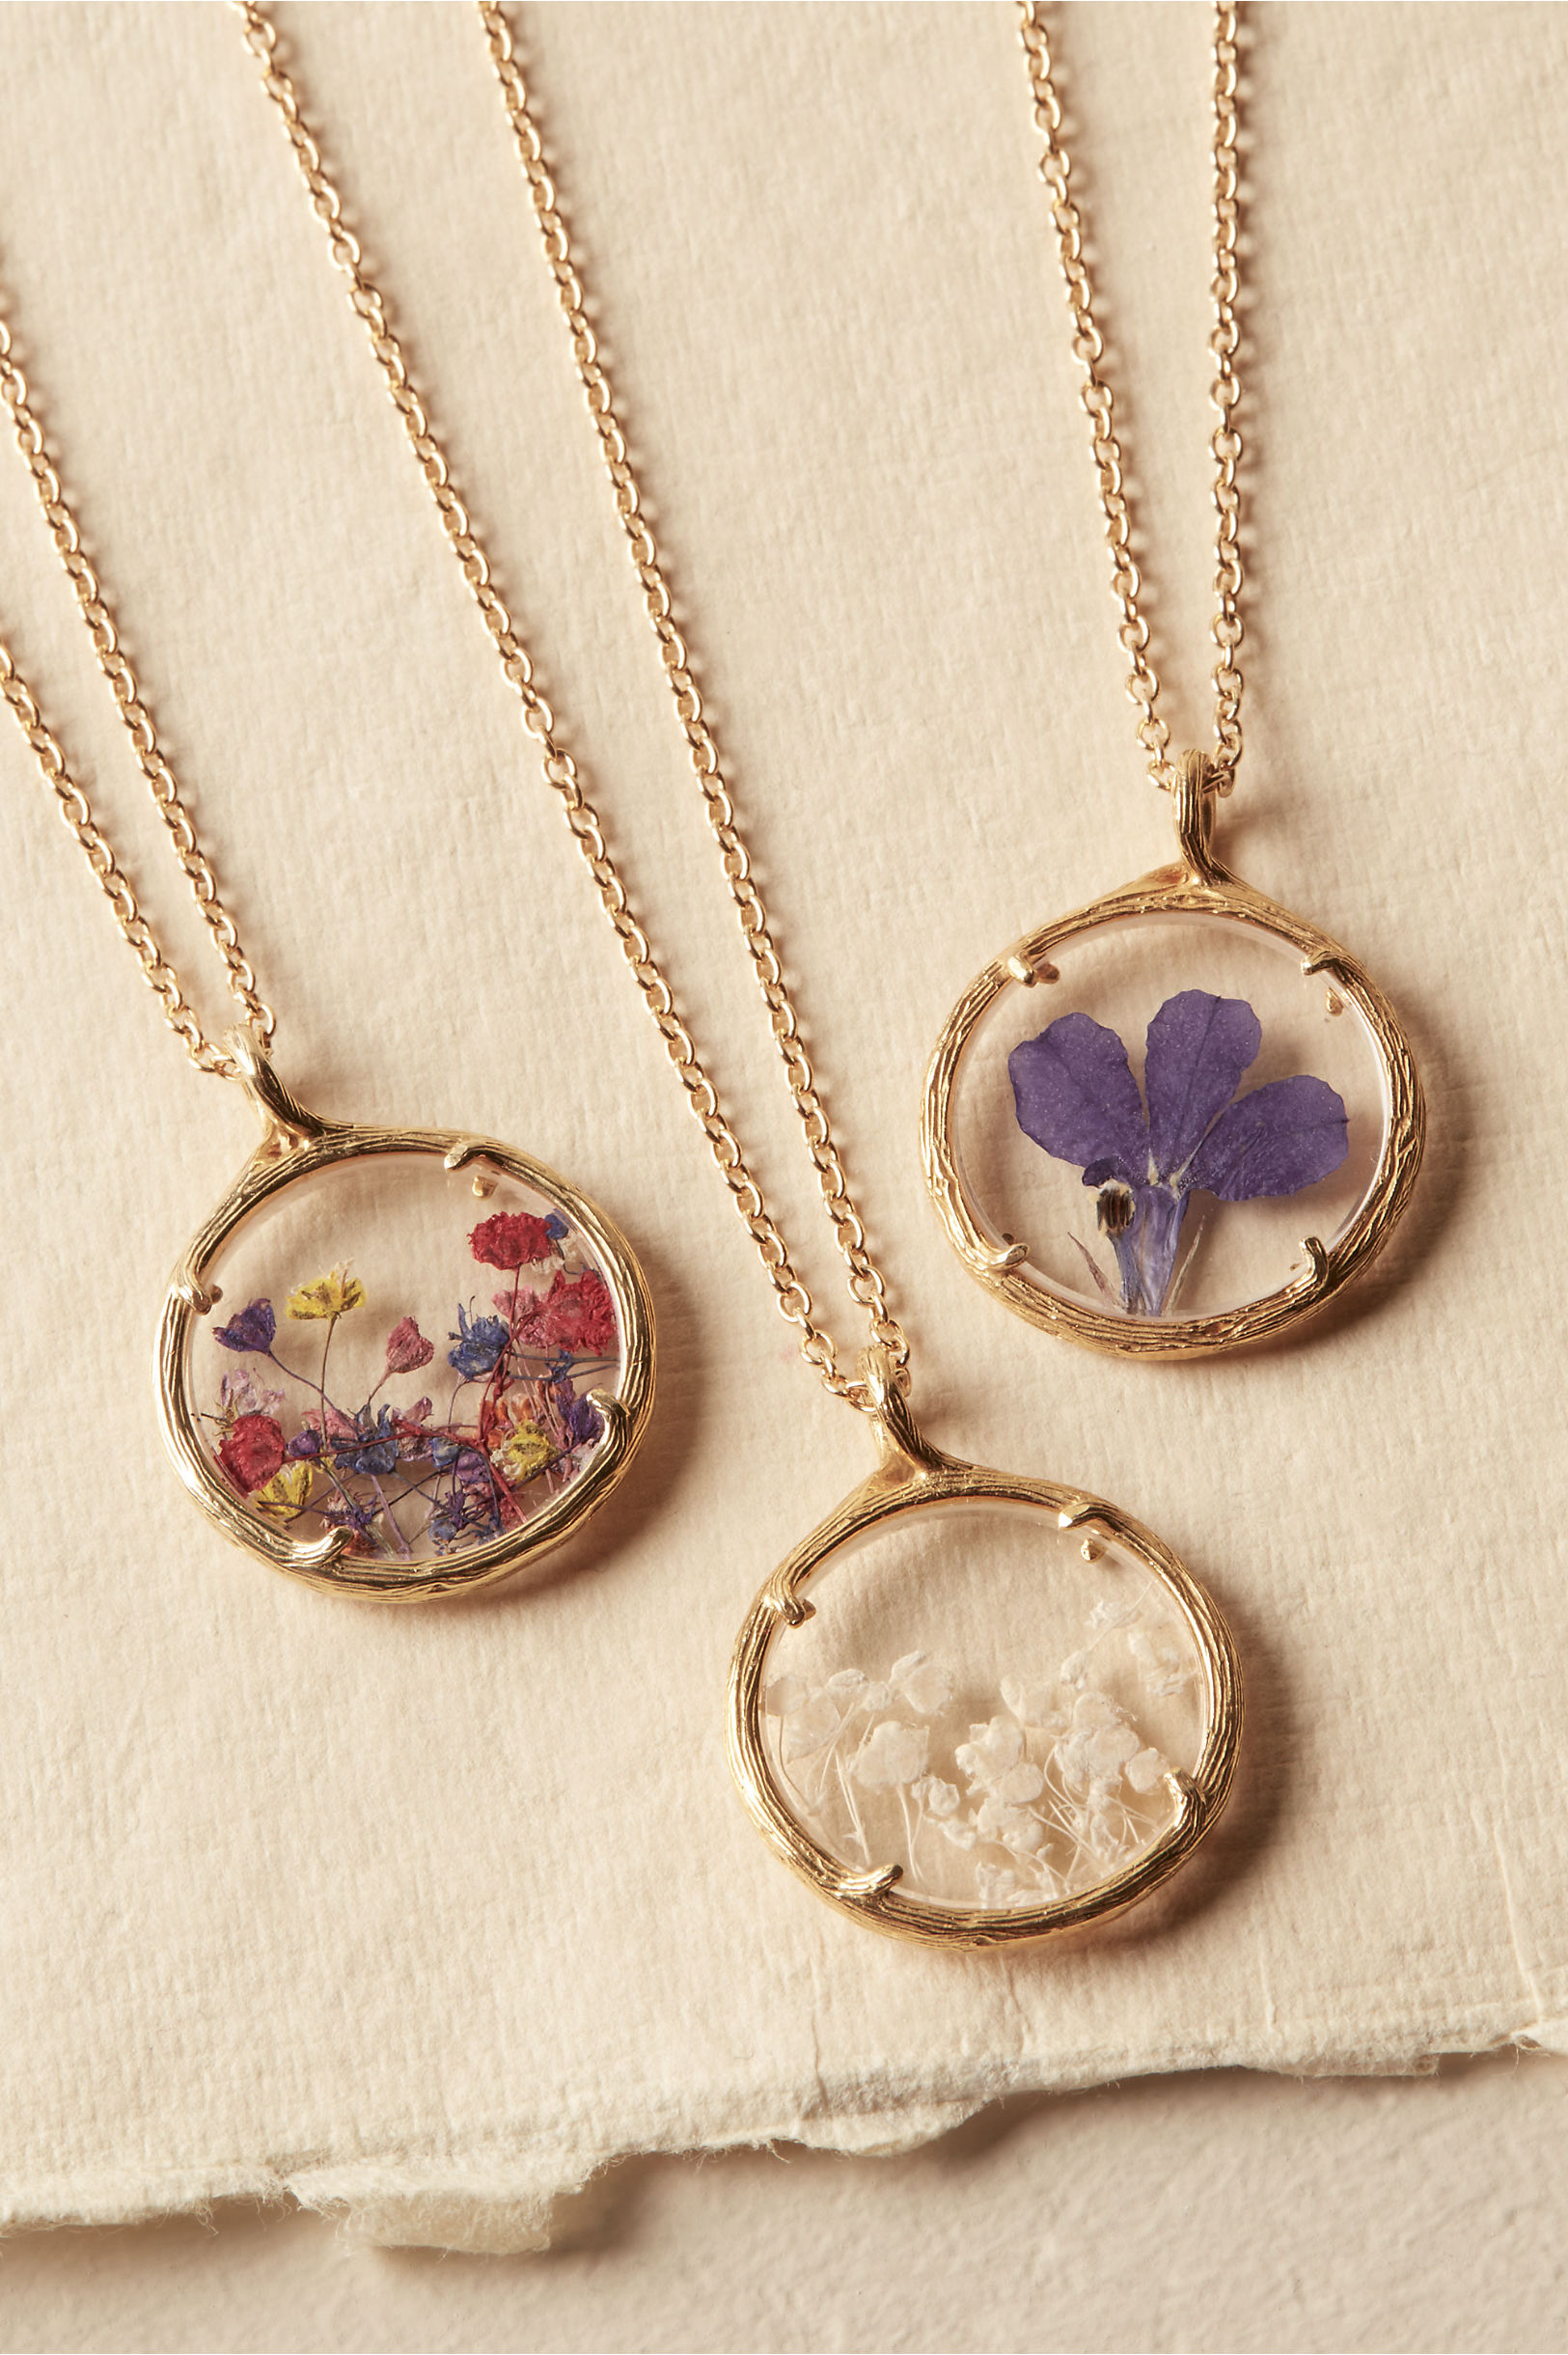 Pressed flower necklace in lingerie bhldn catherine weitzman lobelia pressed flower necklace bhldn mozeypictures Choice Image